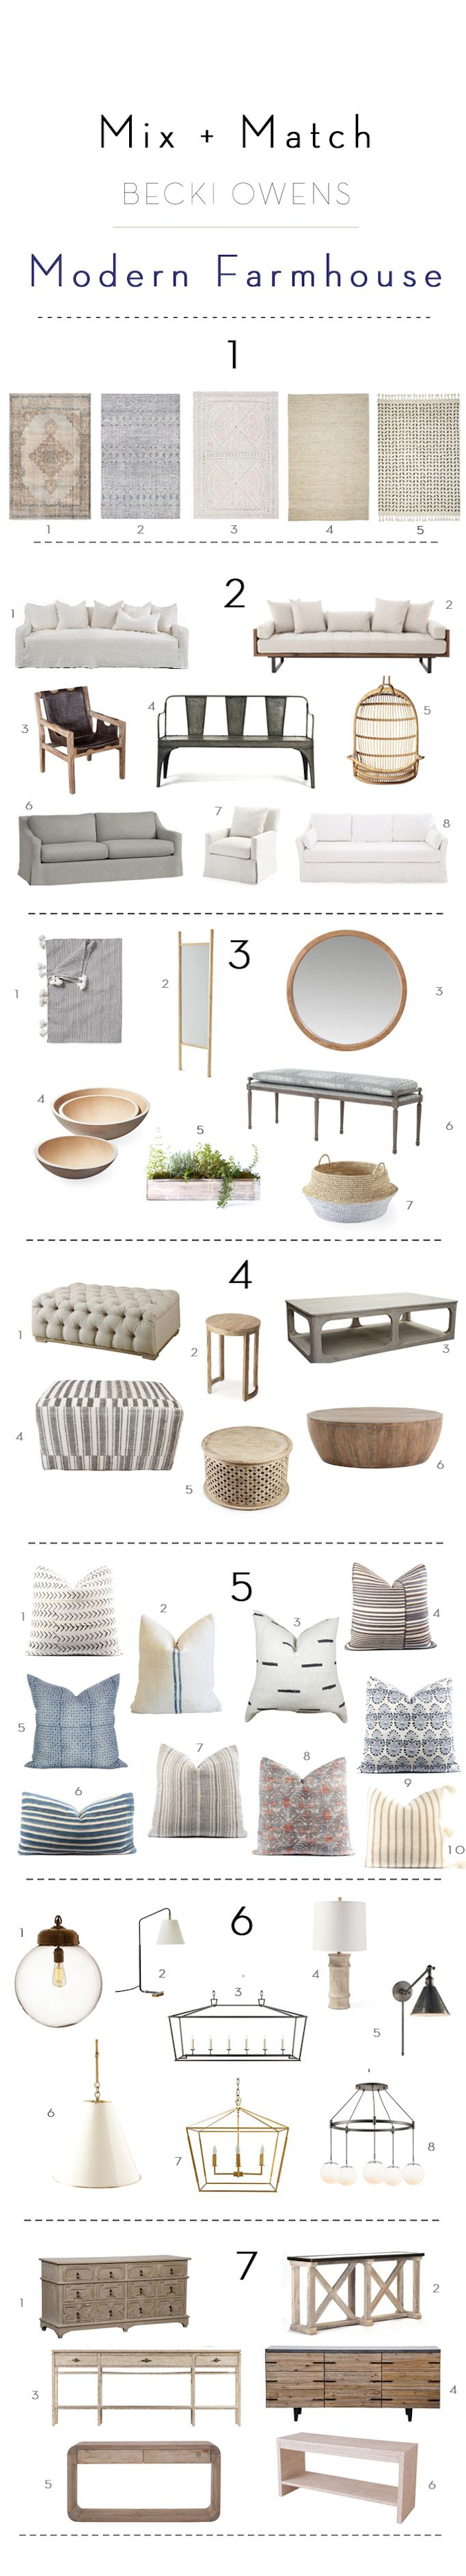 BECKI OWENS--Mix and Match Design: Modern Farmhouse. Getting a curated farmhouse look is simple with our mix and match guide. Head to the blog for details!